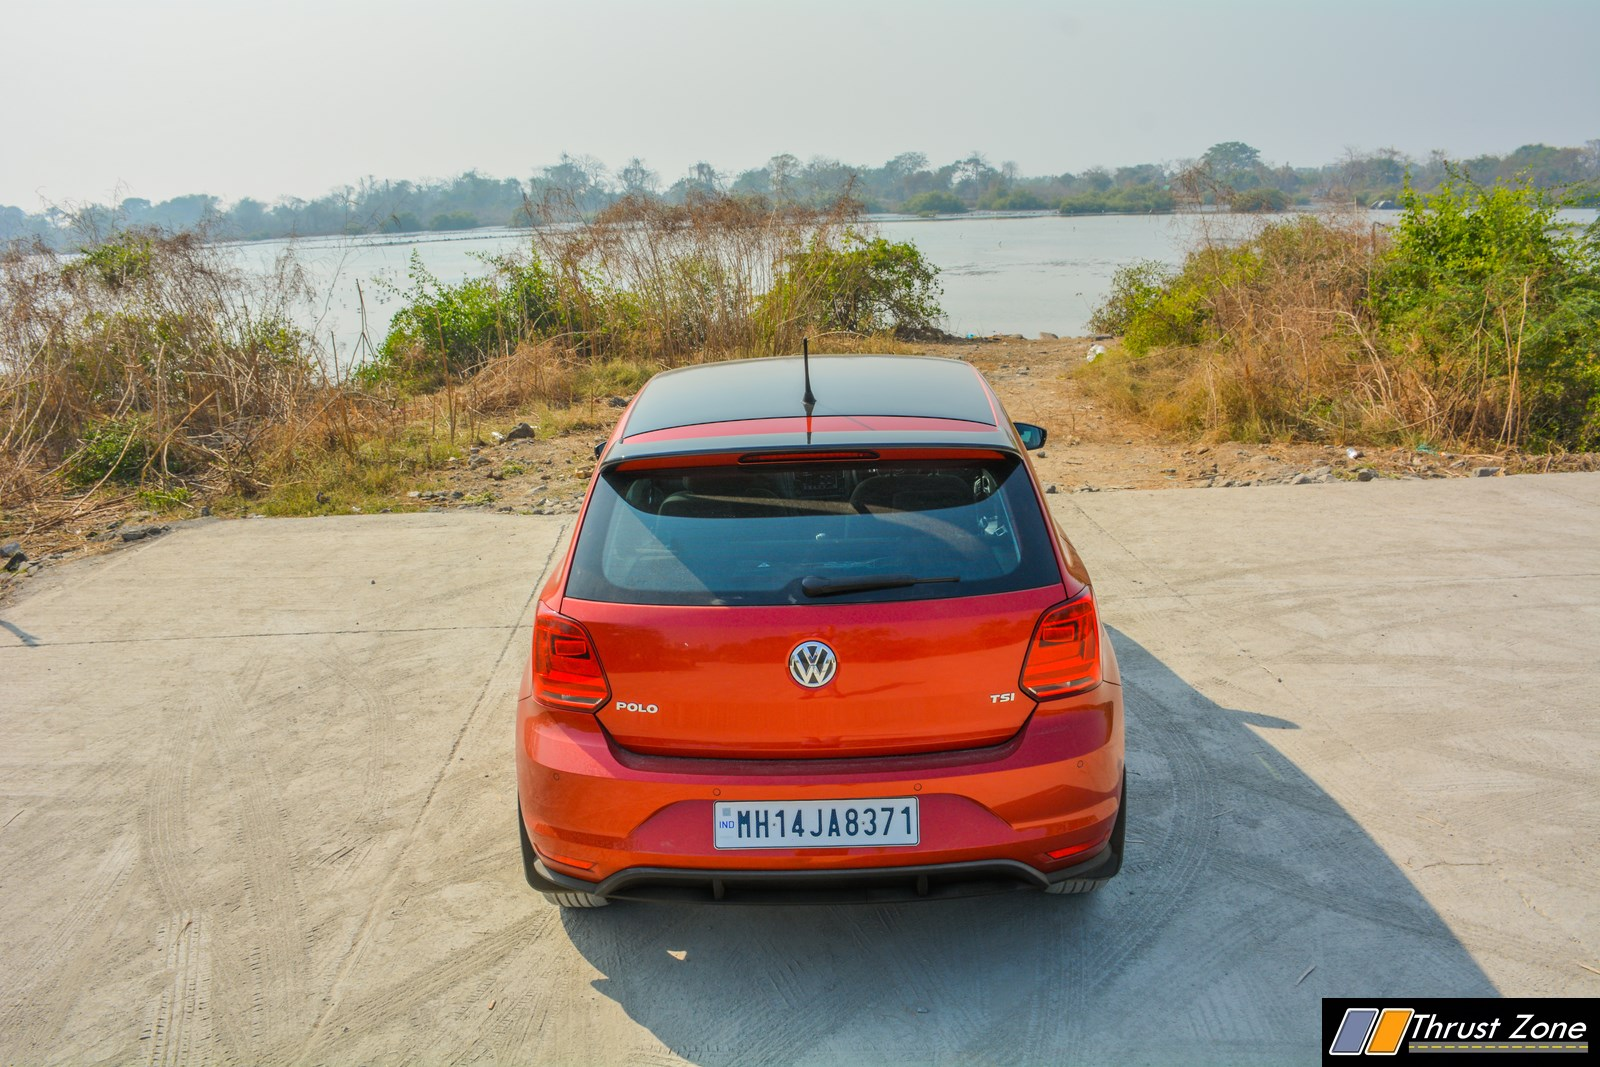 2021-Volkswagen-Polo-TSi-Review-Automatic-Manual-19